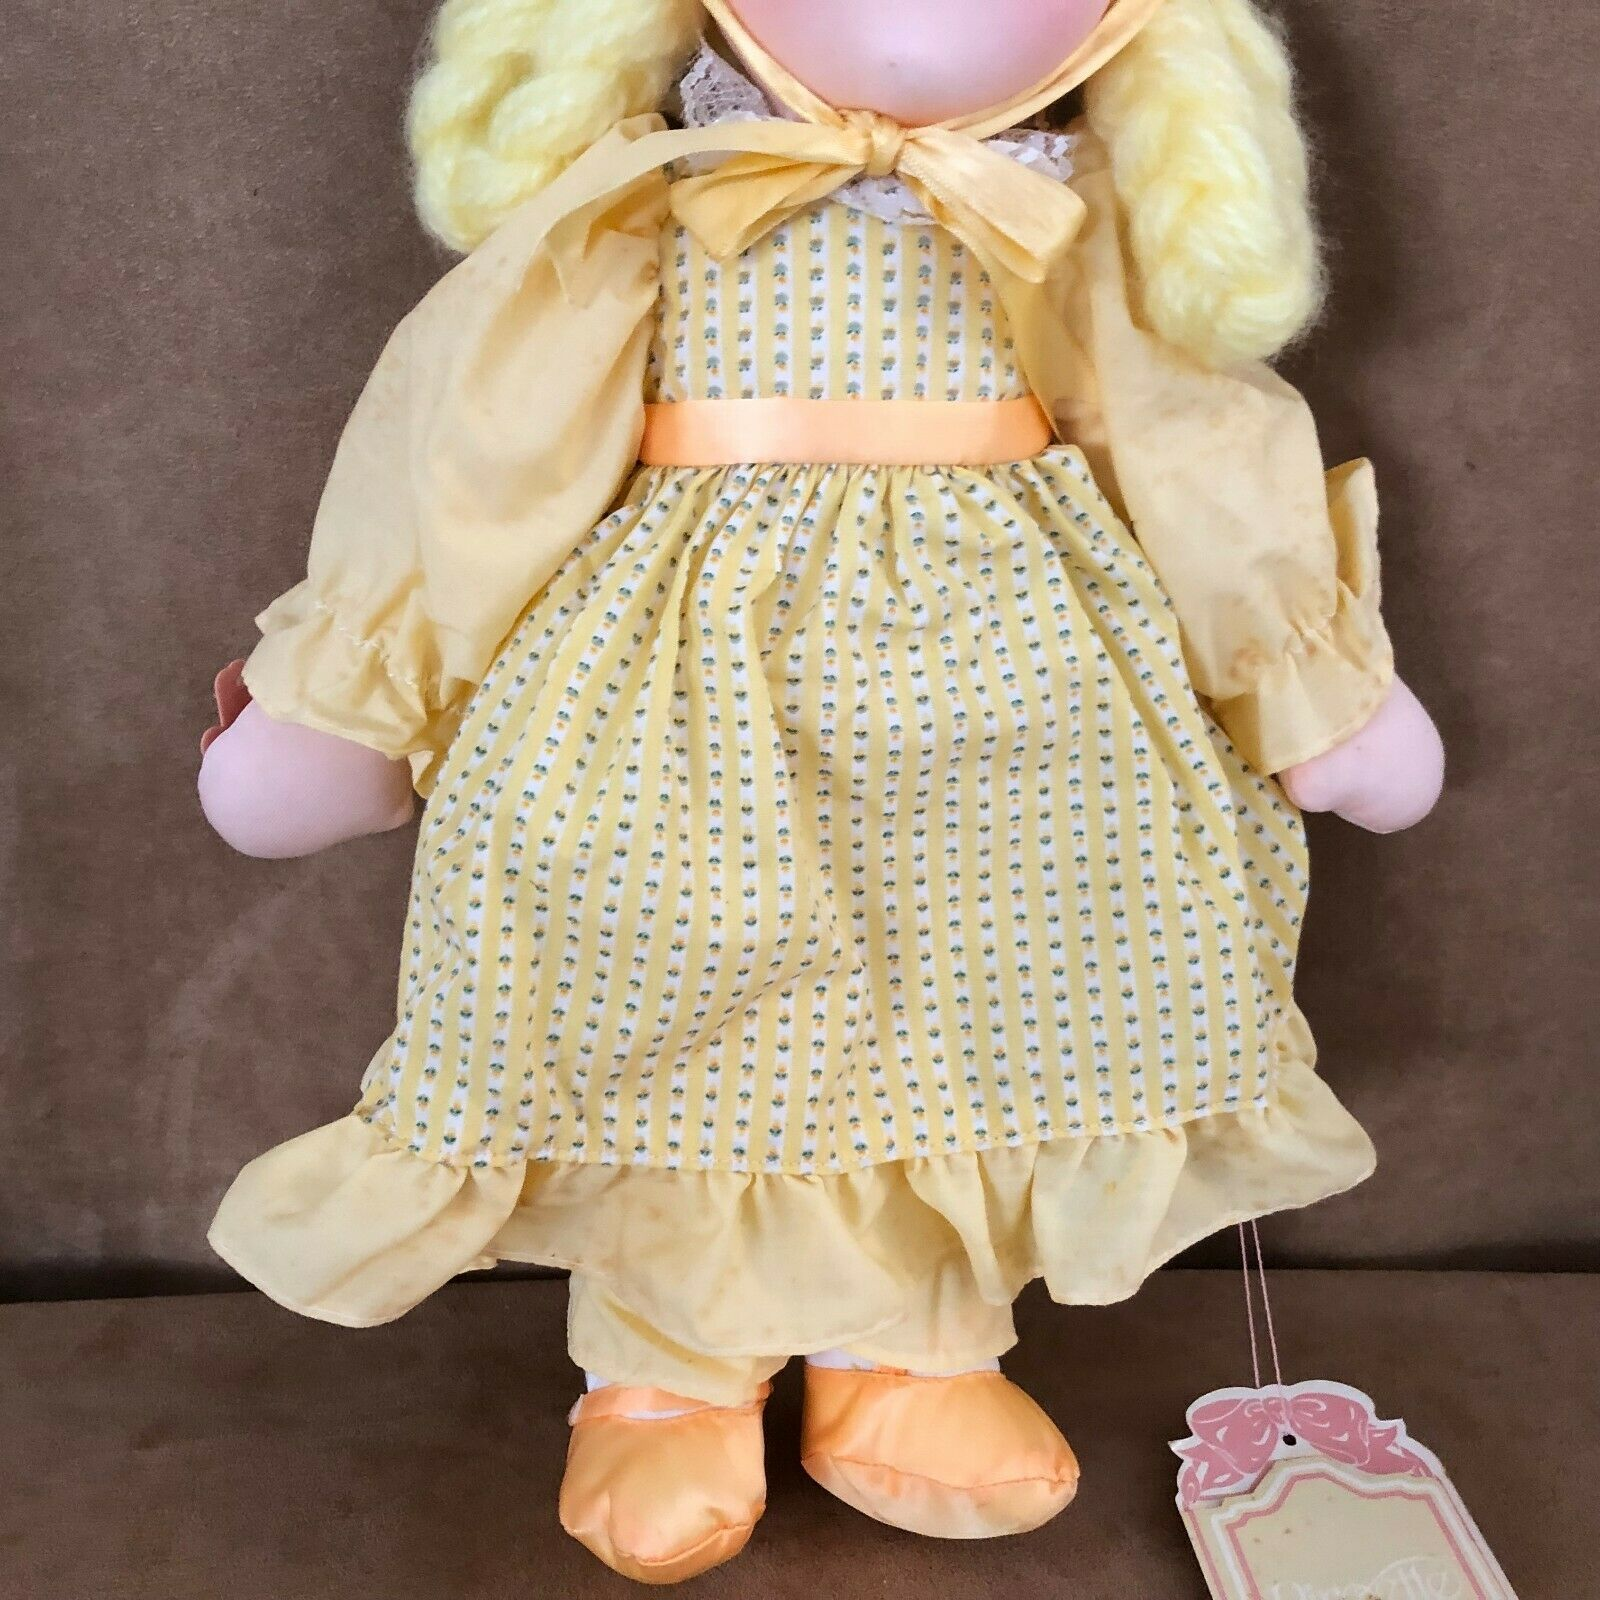 "Applause Daisy soft body doll vintage yellow dress hair Piorette 16""  image 4"